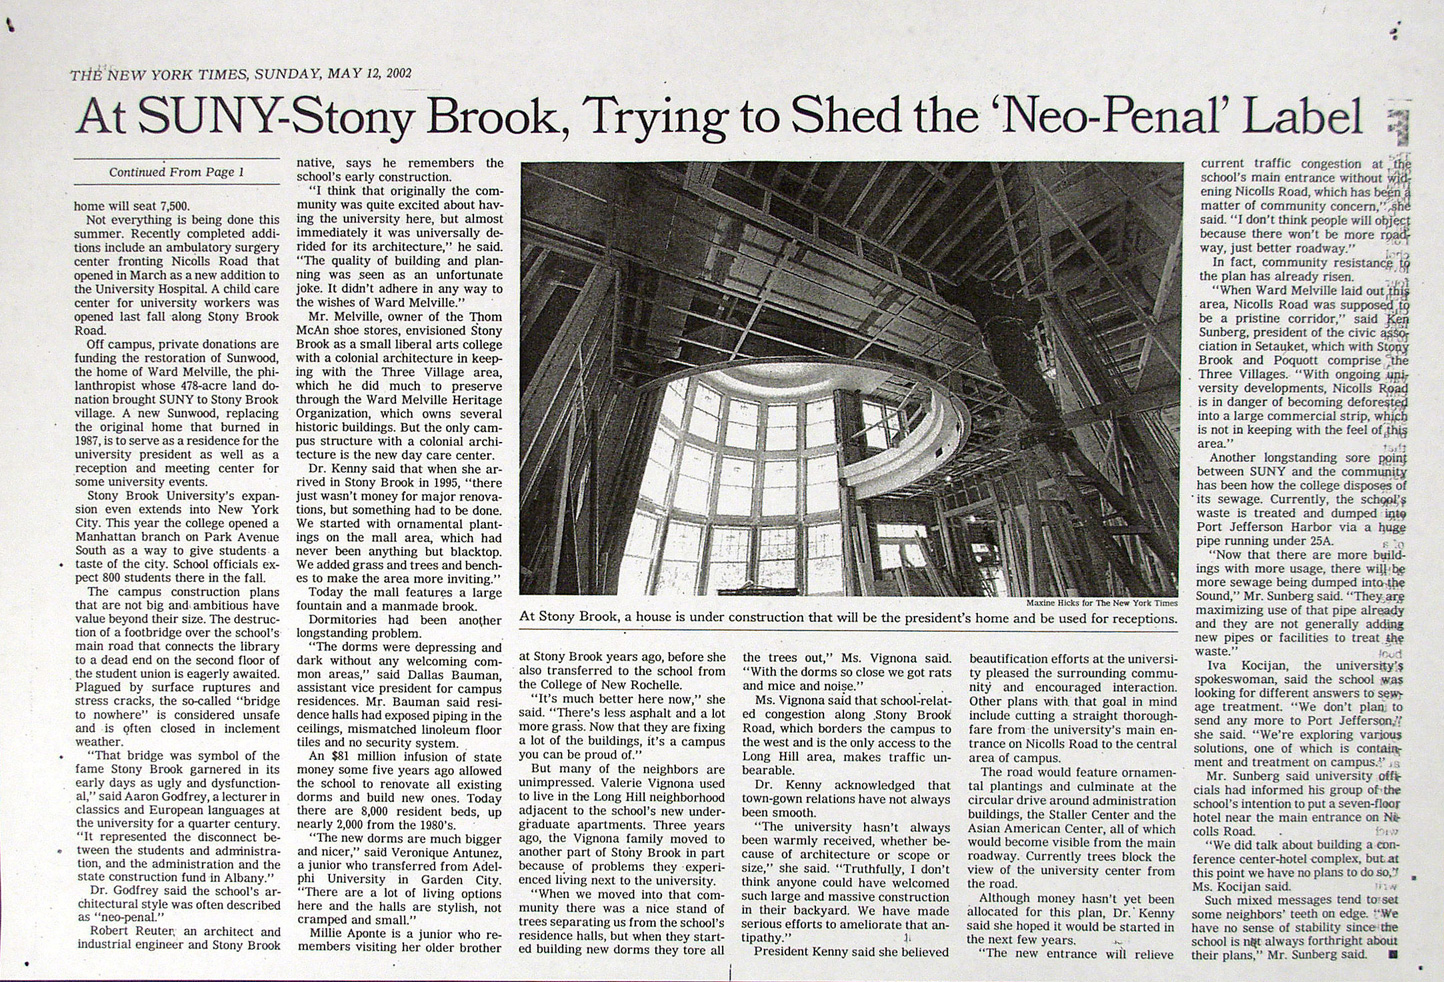 Dating article new york times